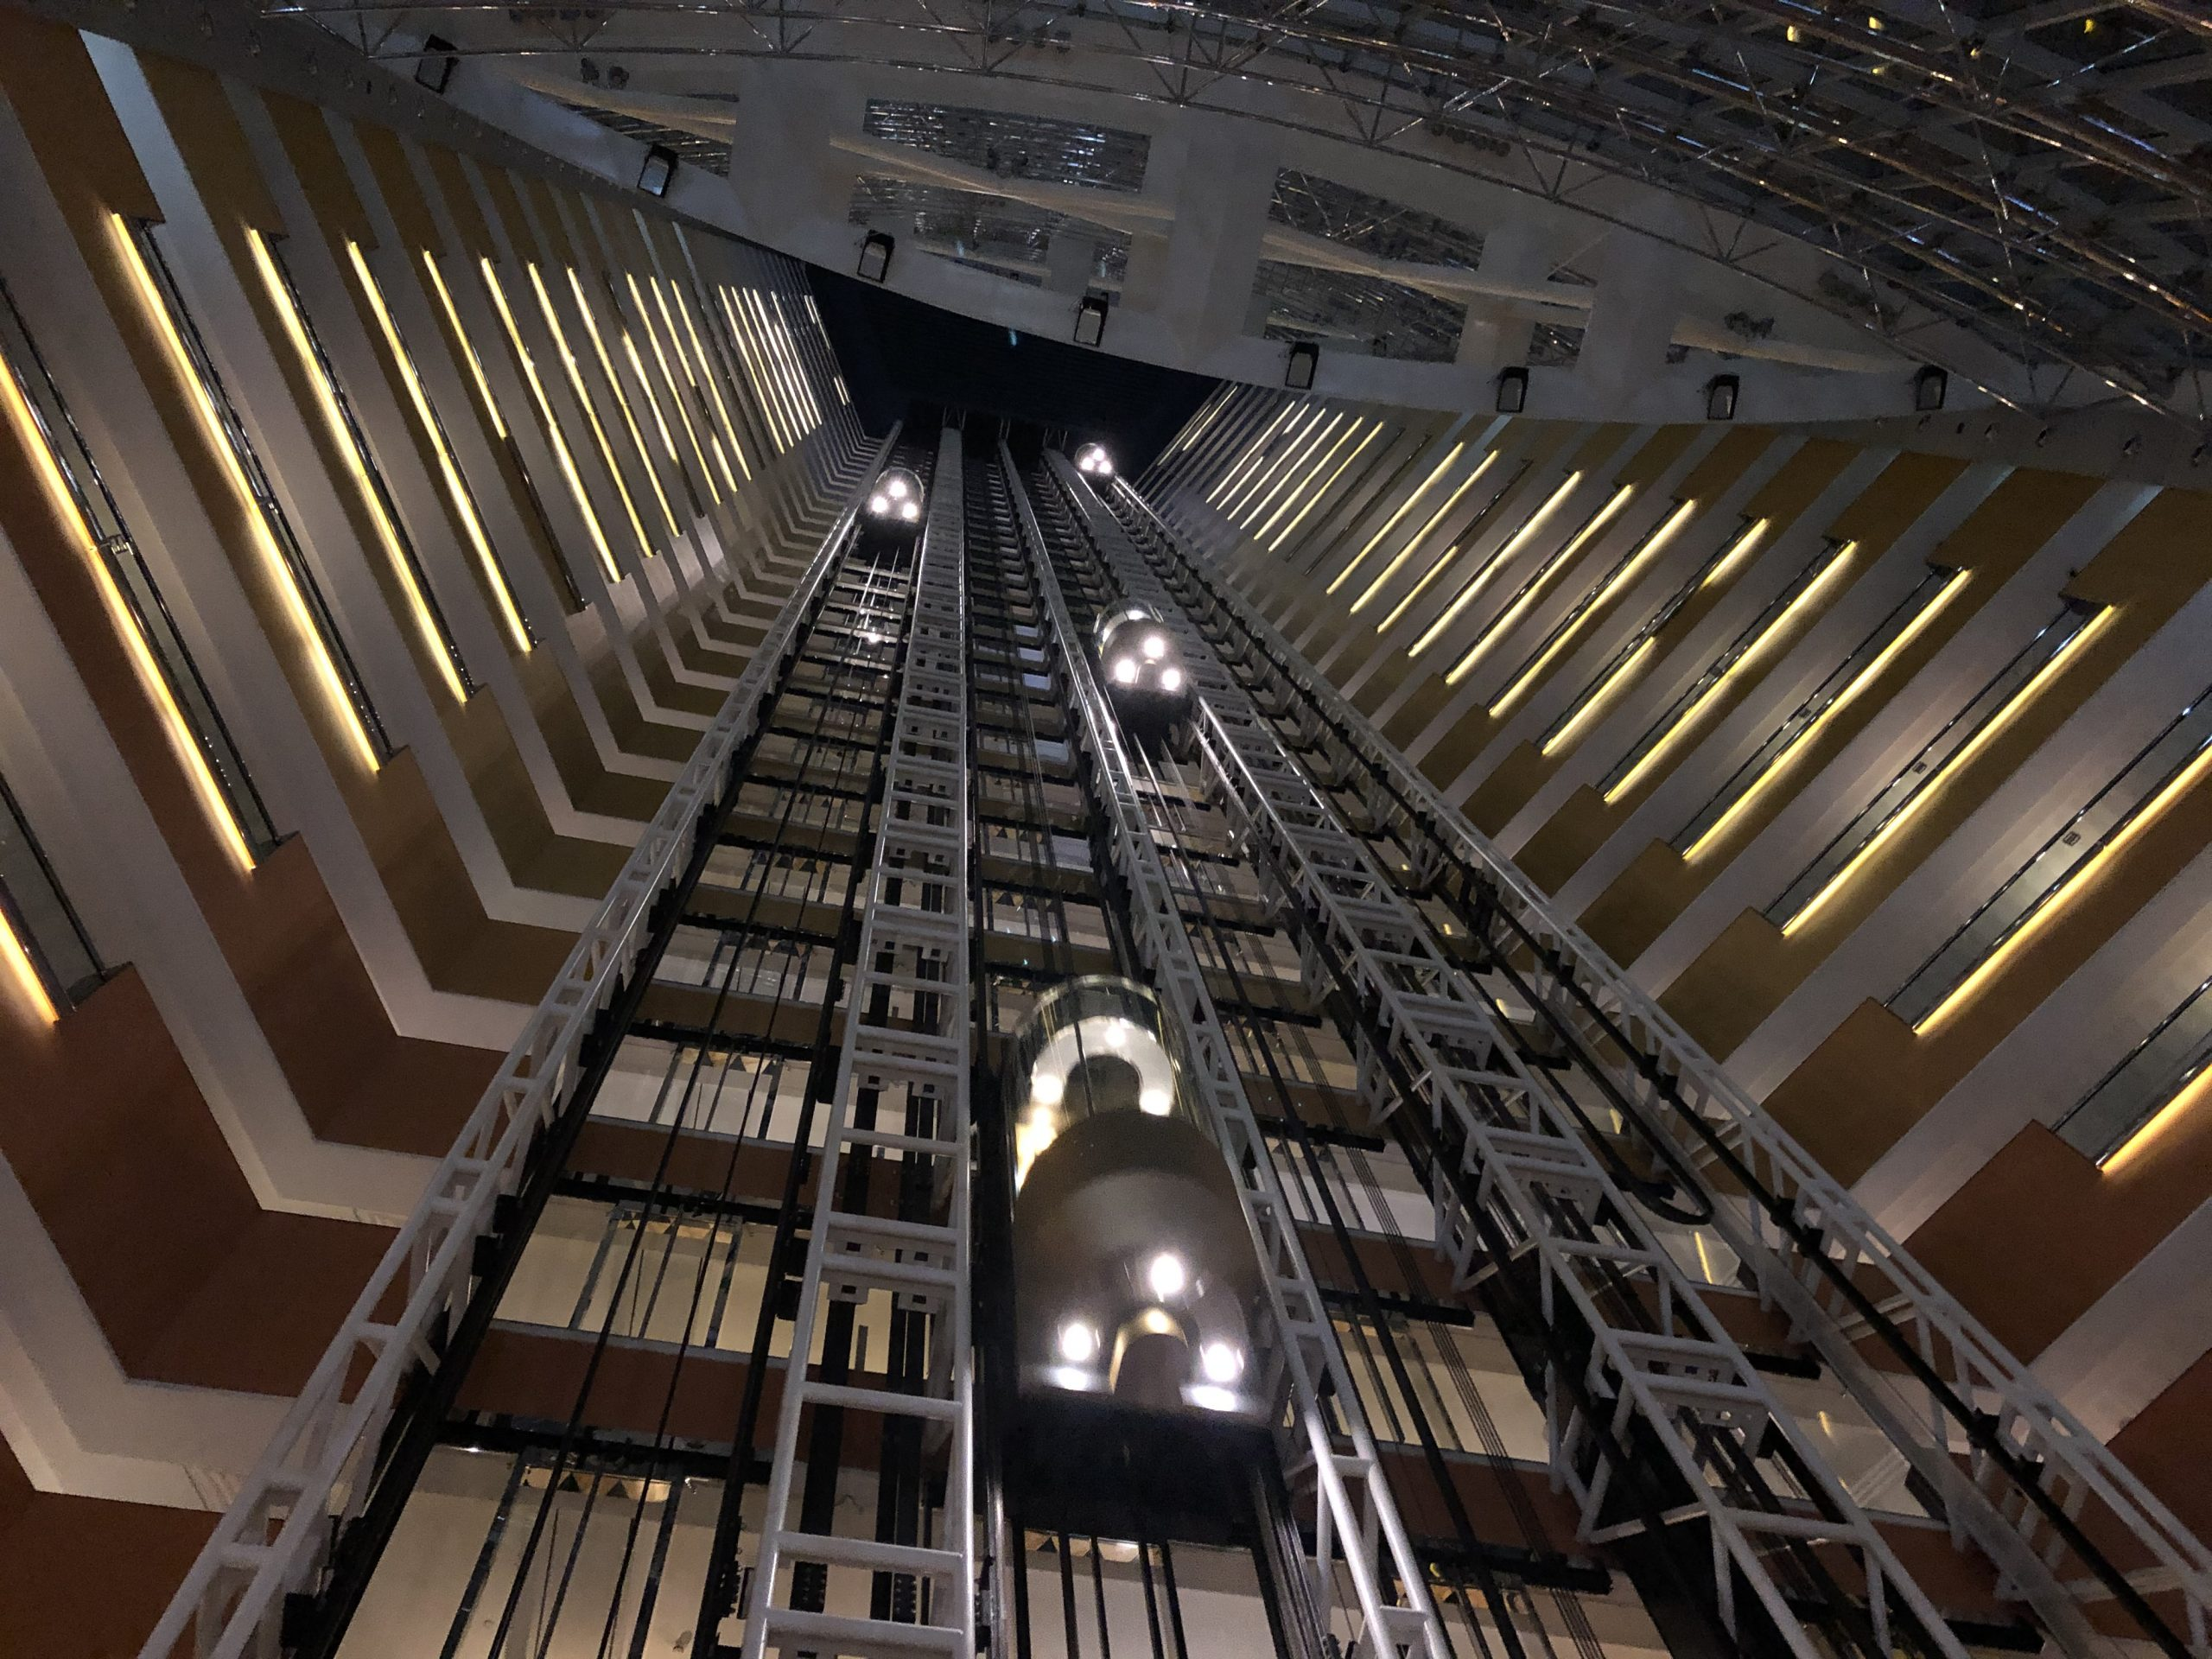 Elevators at the Jumeirah Emirates Towers, Dubai — just makes me think of a scene from _Star Wars_